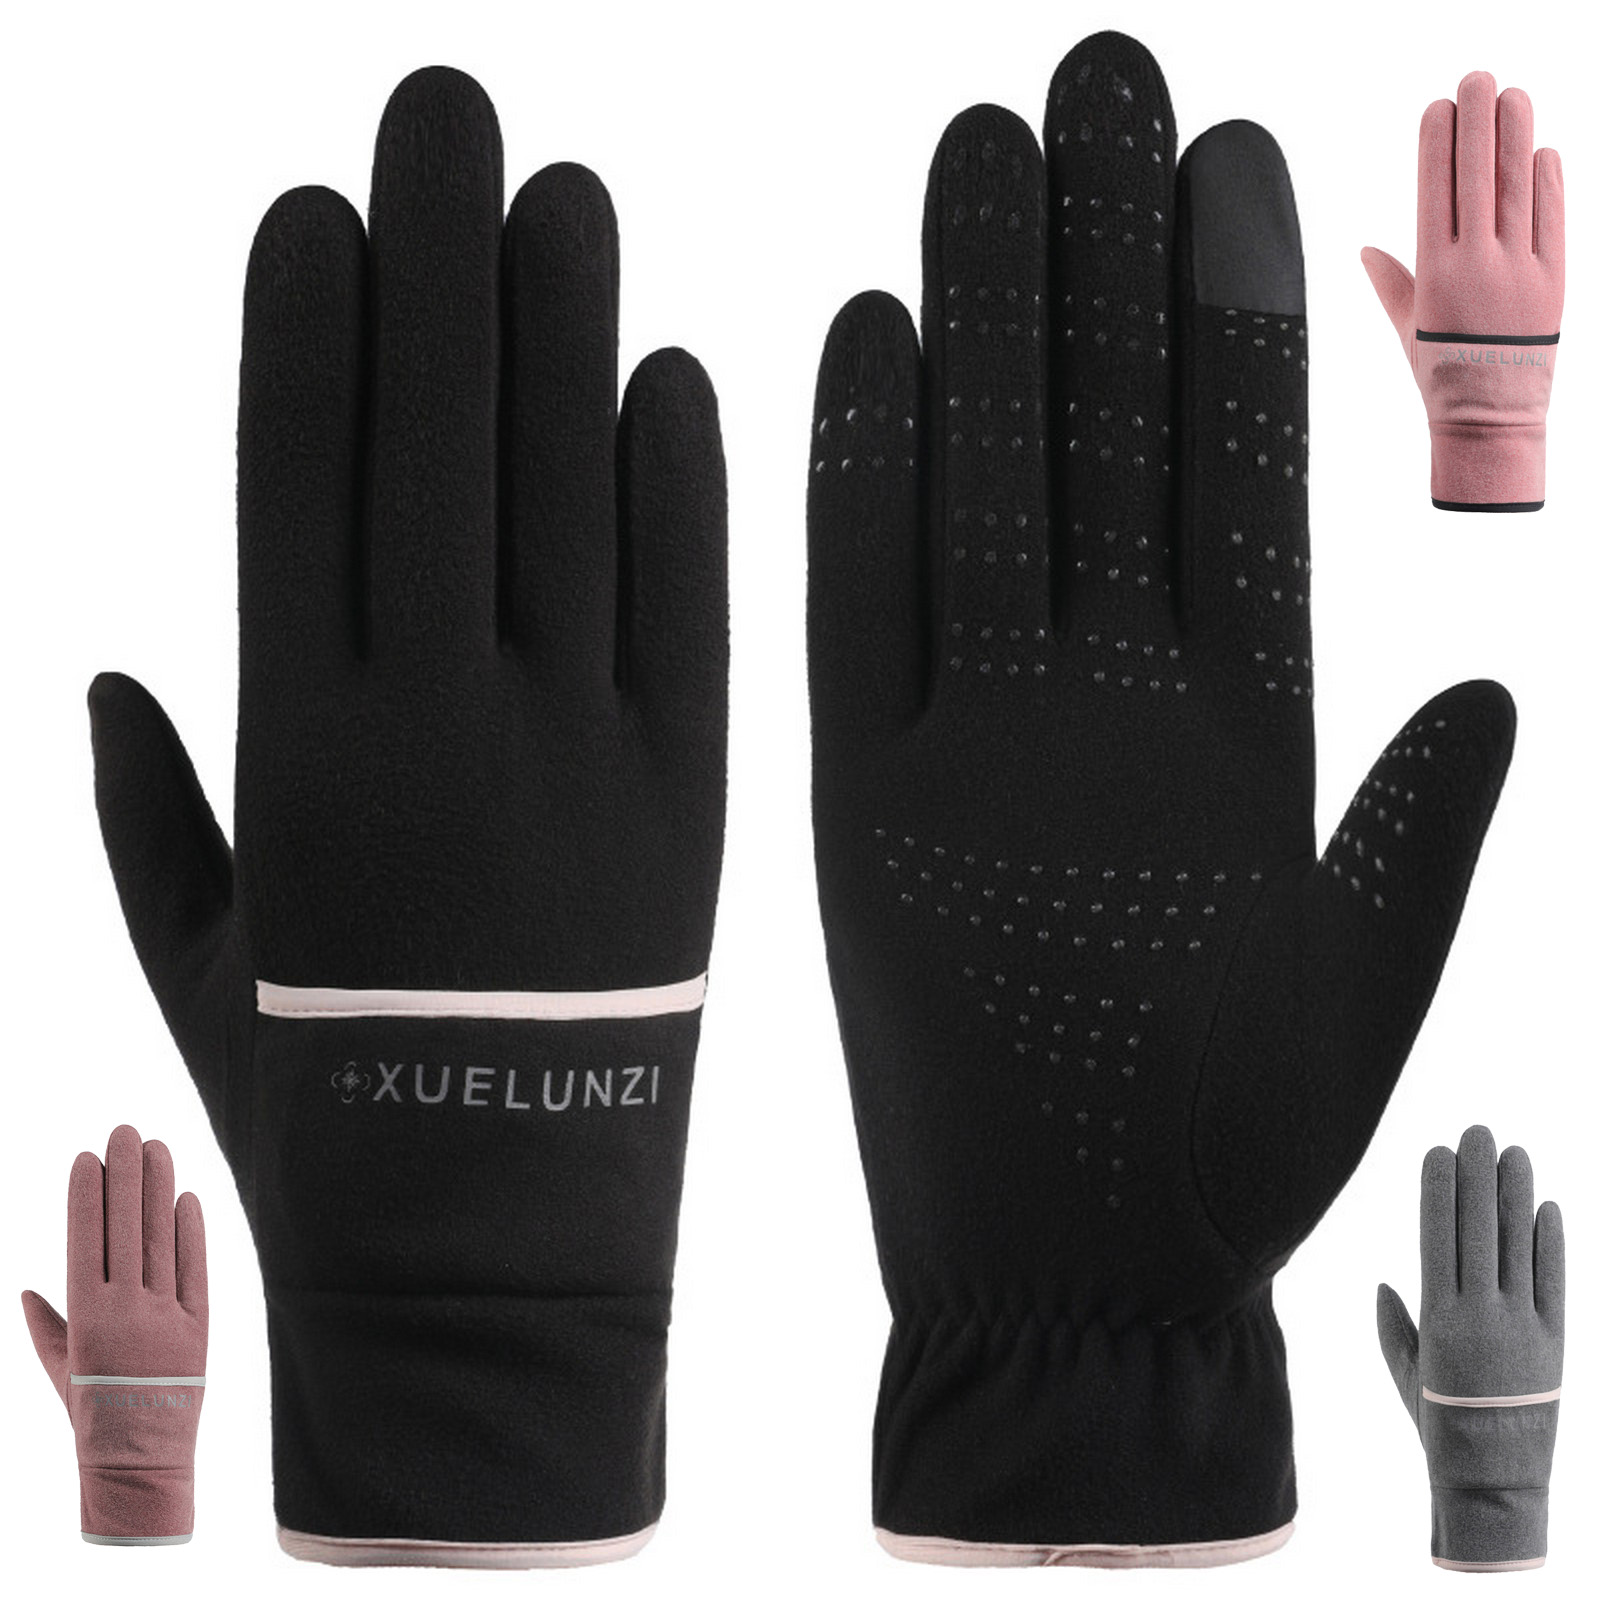 Winter warm bicycle gloves foldable storage windproof cover skiing outdoor camping hiking motorcycle sports all finger gloves